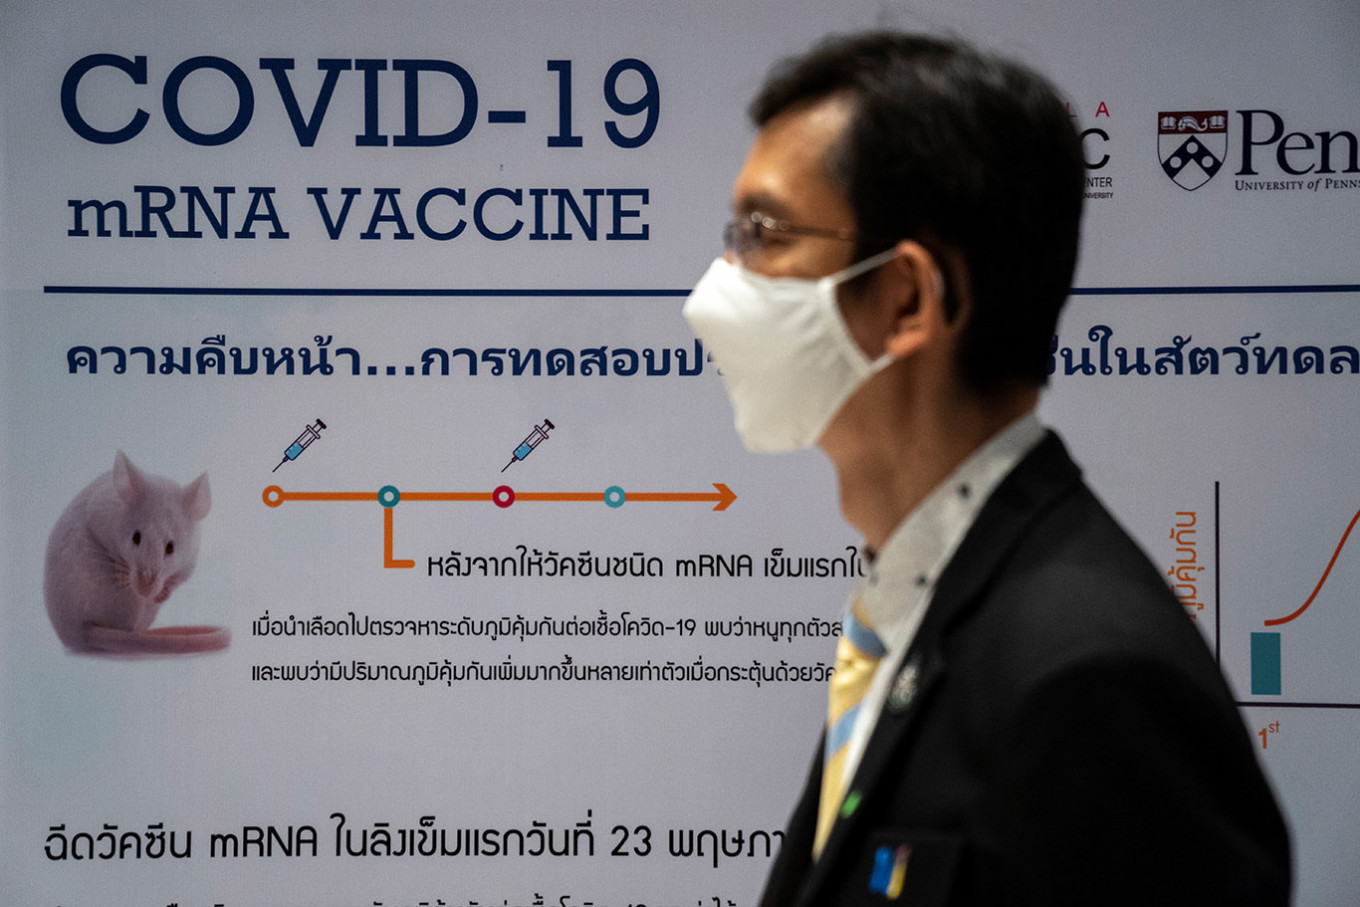 Thai trials of COVID-19 vaccine reach make-or-break stage